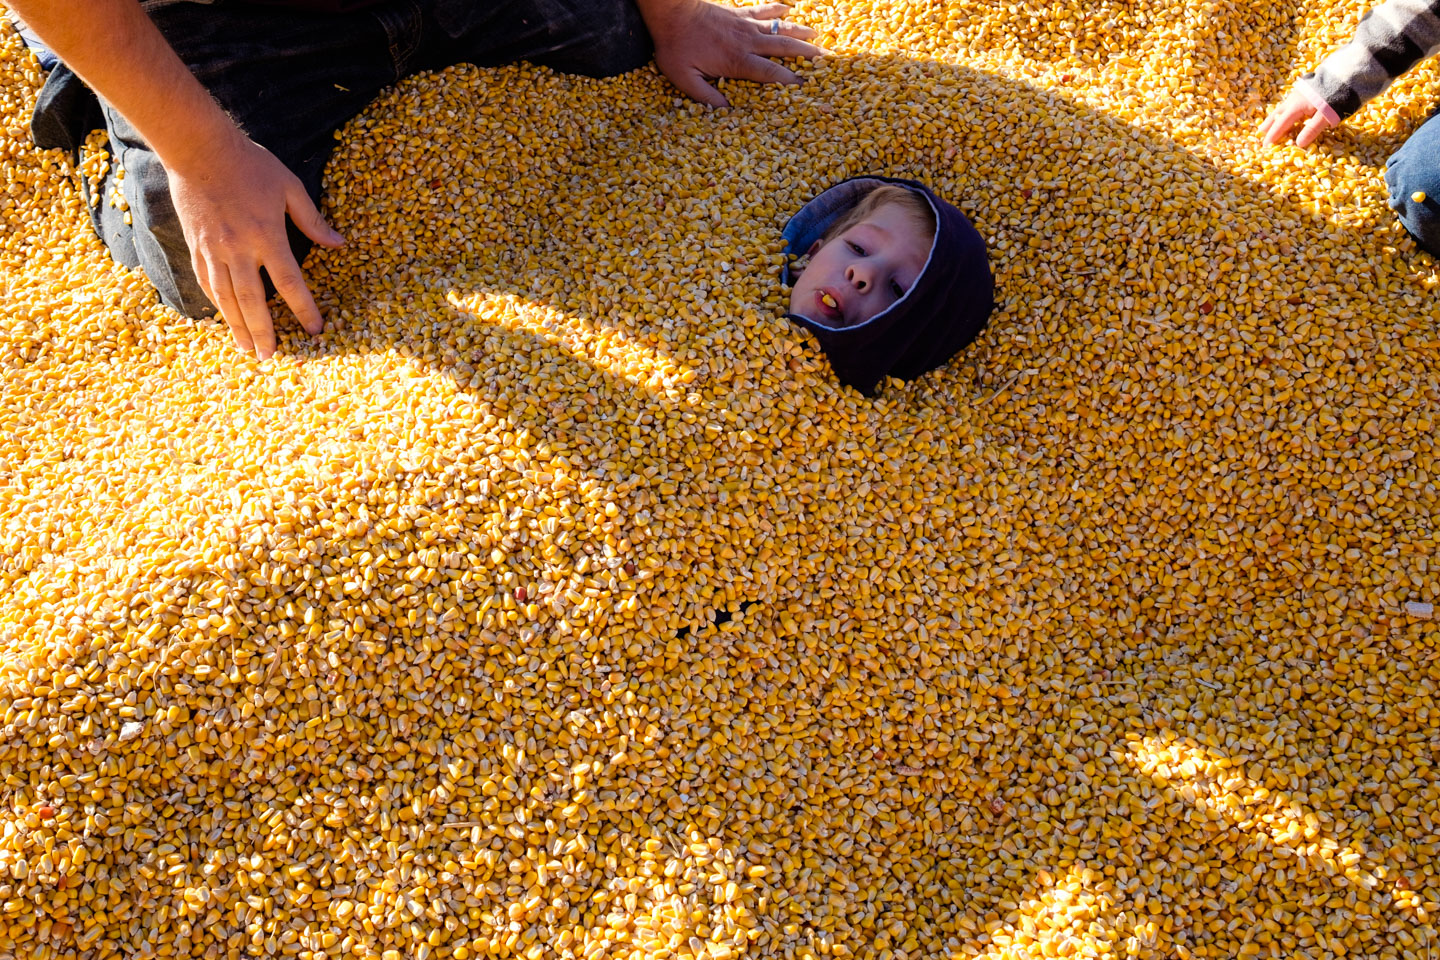 Kids buried in corn